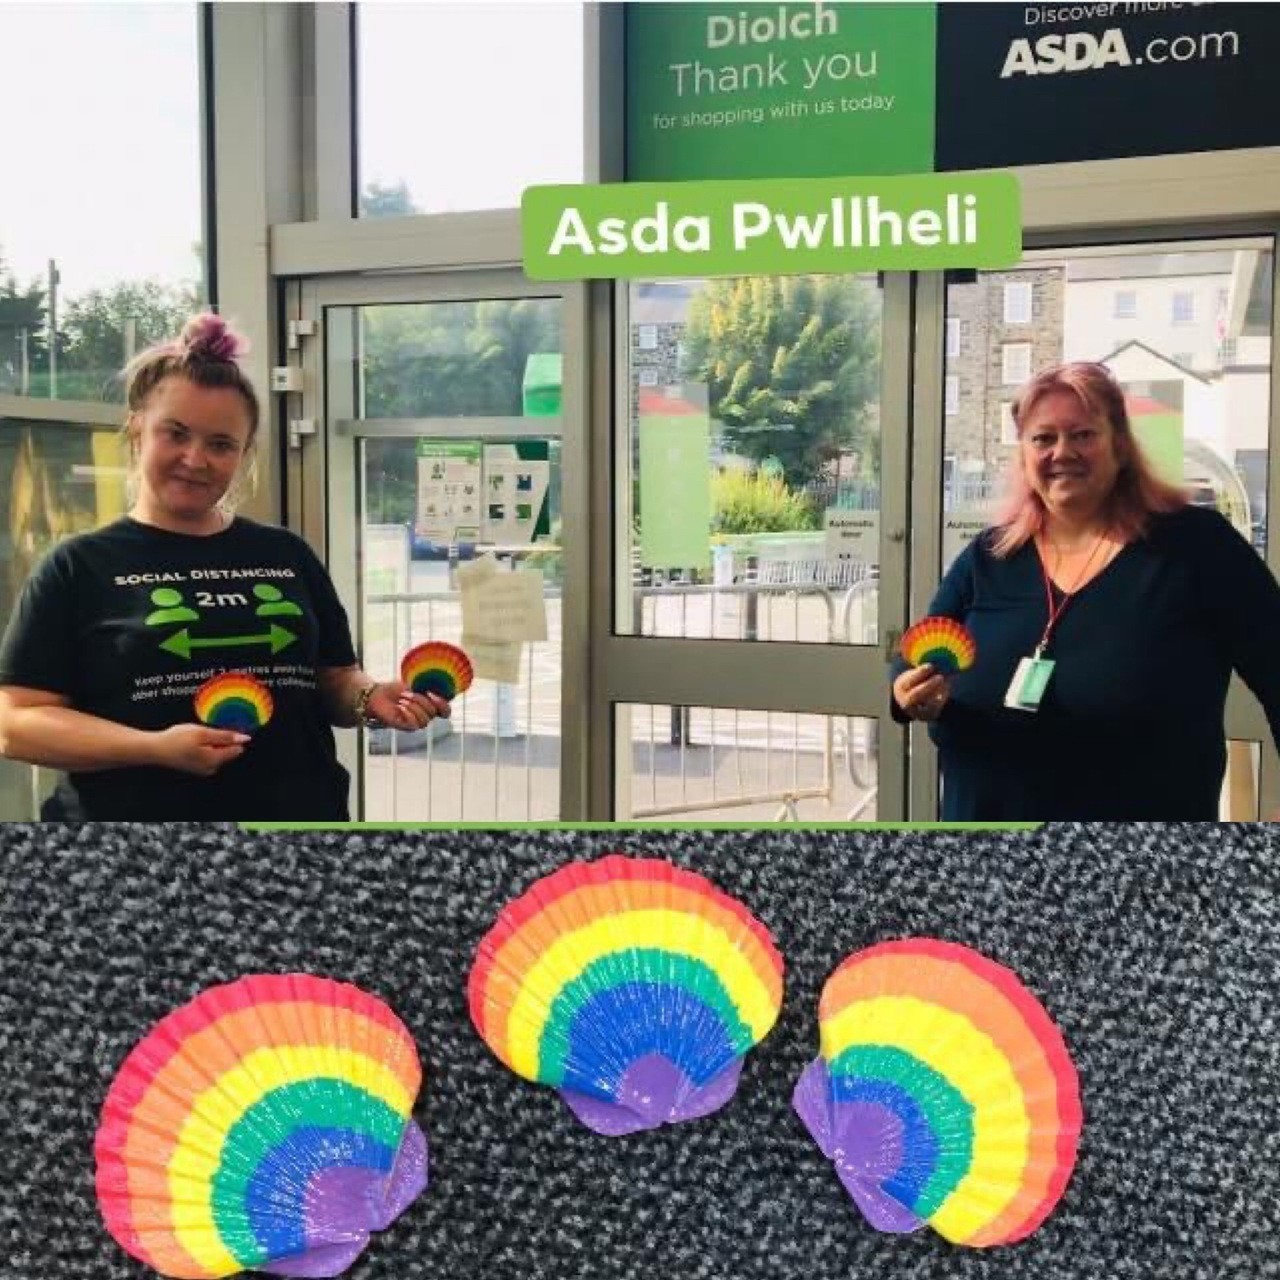 Lovely gesture during NHS priority shopping hour | Asda Pwllheli